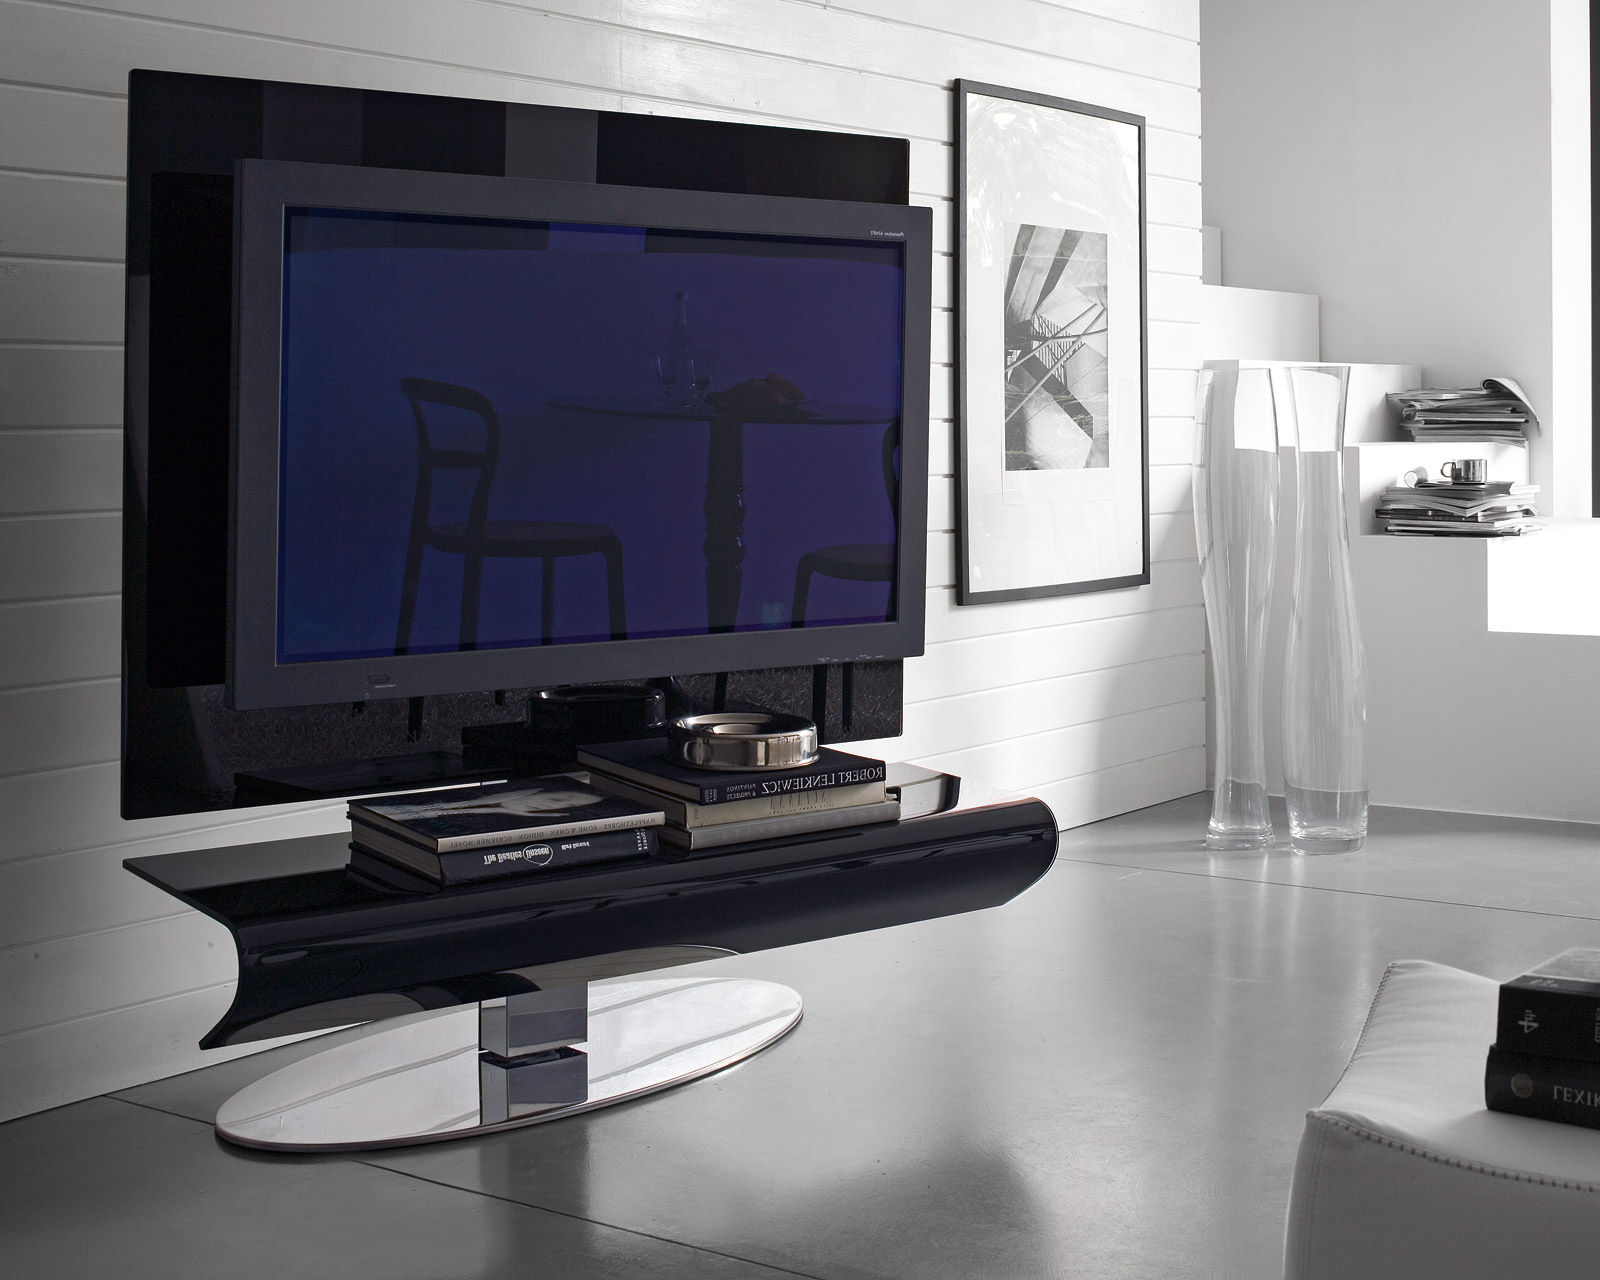 2018 Contemporary Tv Stands For Flat Screens Throughout Wood Corner Tv Stands For Flat Screens — Home Decor (View 18 of 20)